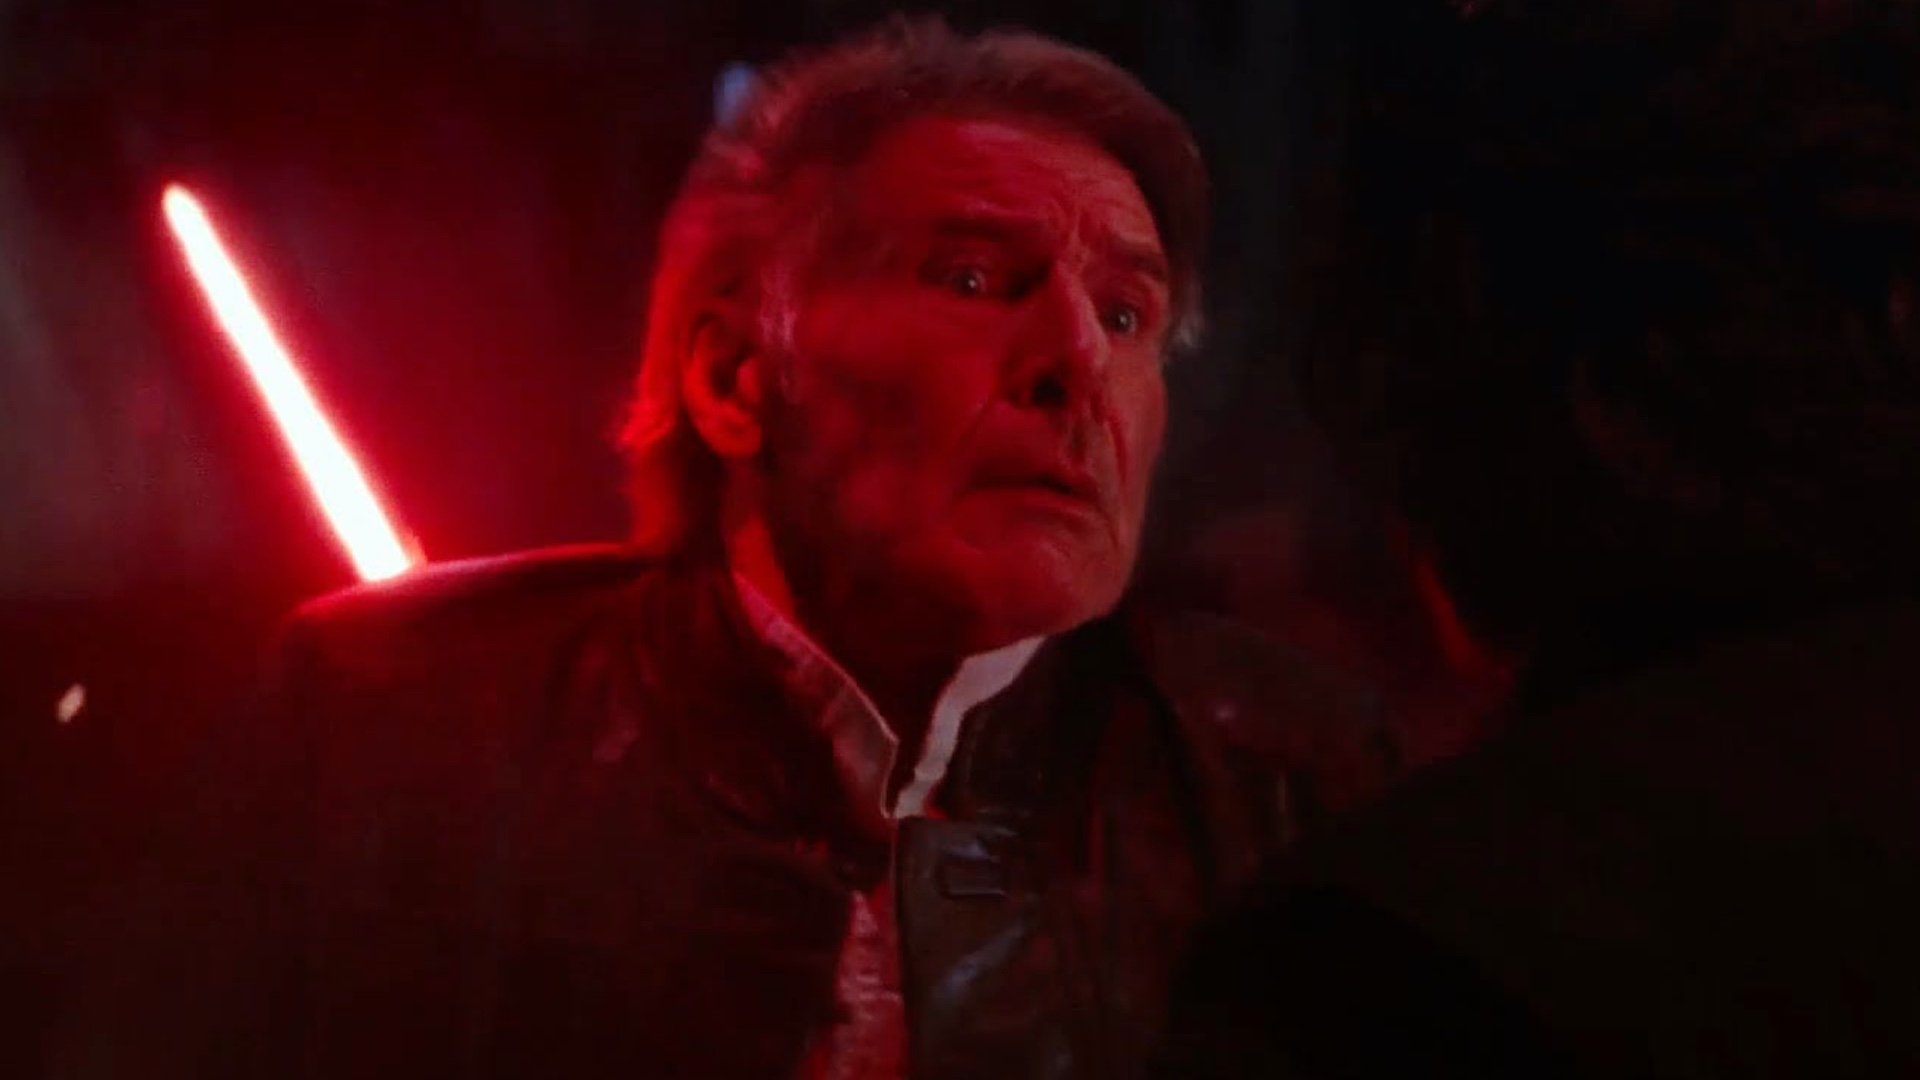 there-was-a-big-debate-between-disney-and-lucasfilm-about-killing-off-han-solo-in-the-force-awakens-social.jpg